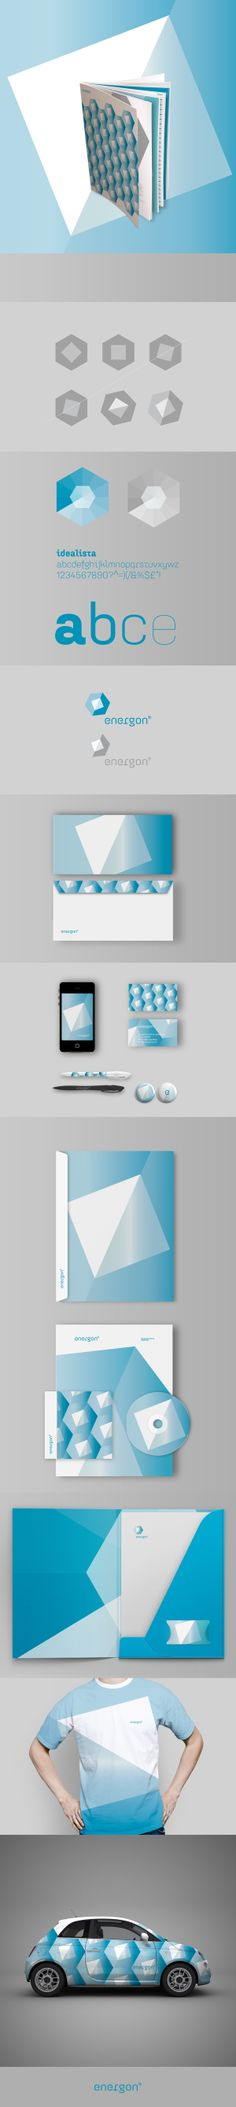 Energon – Brand Identity by Mimmo Manes, via Behance